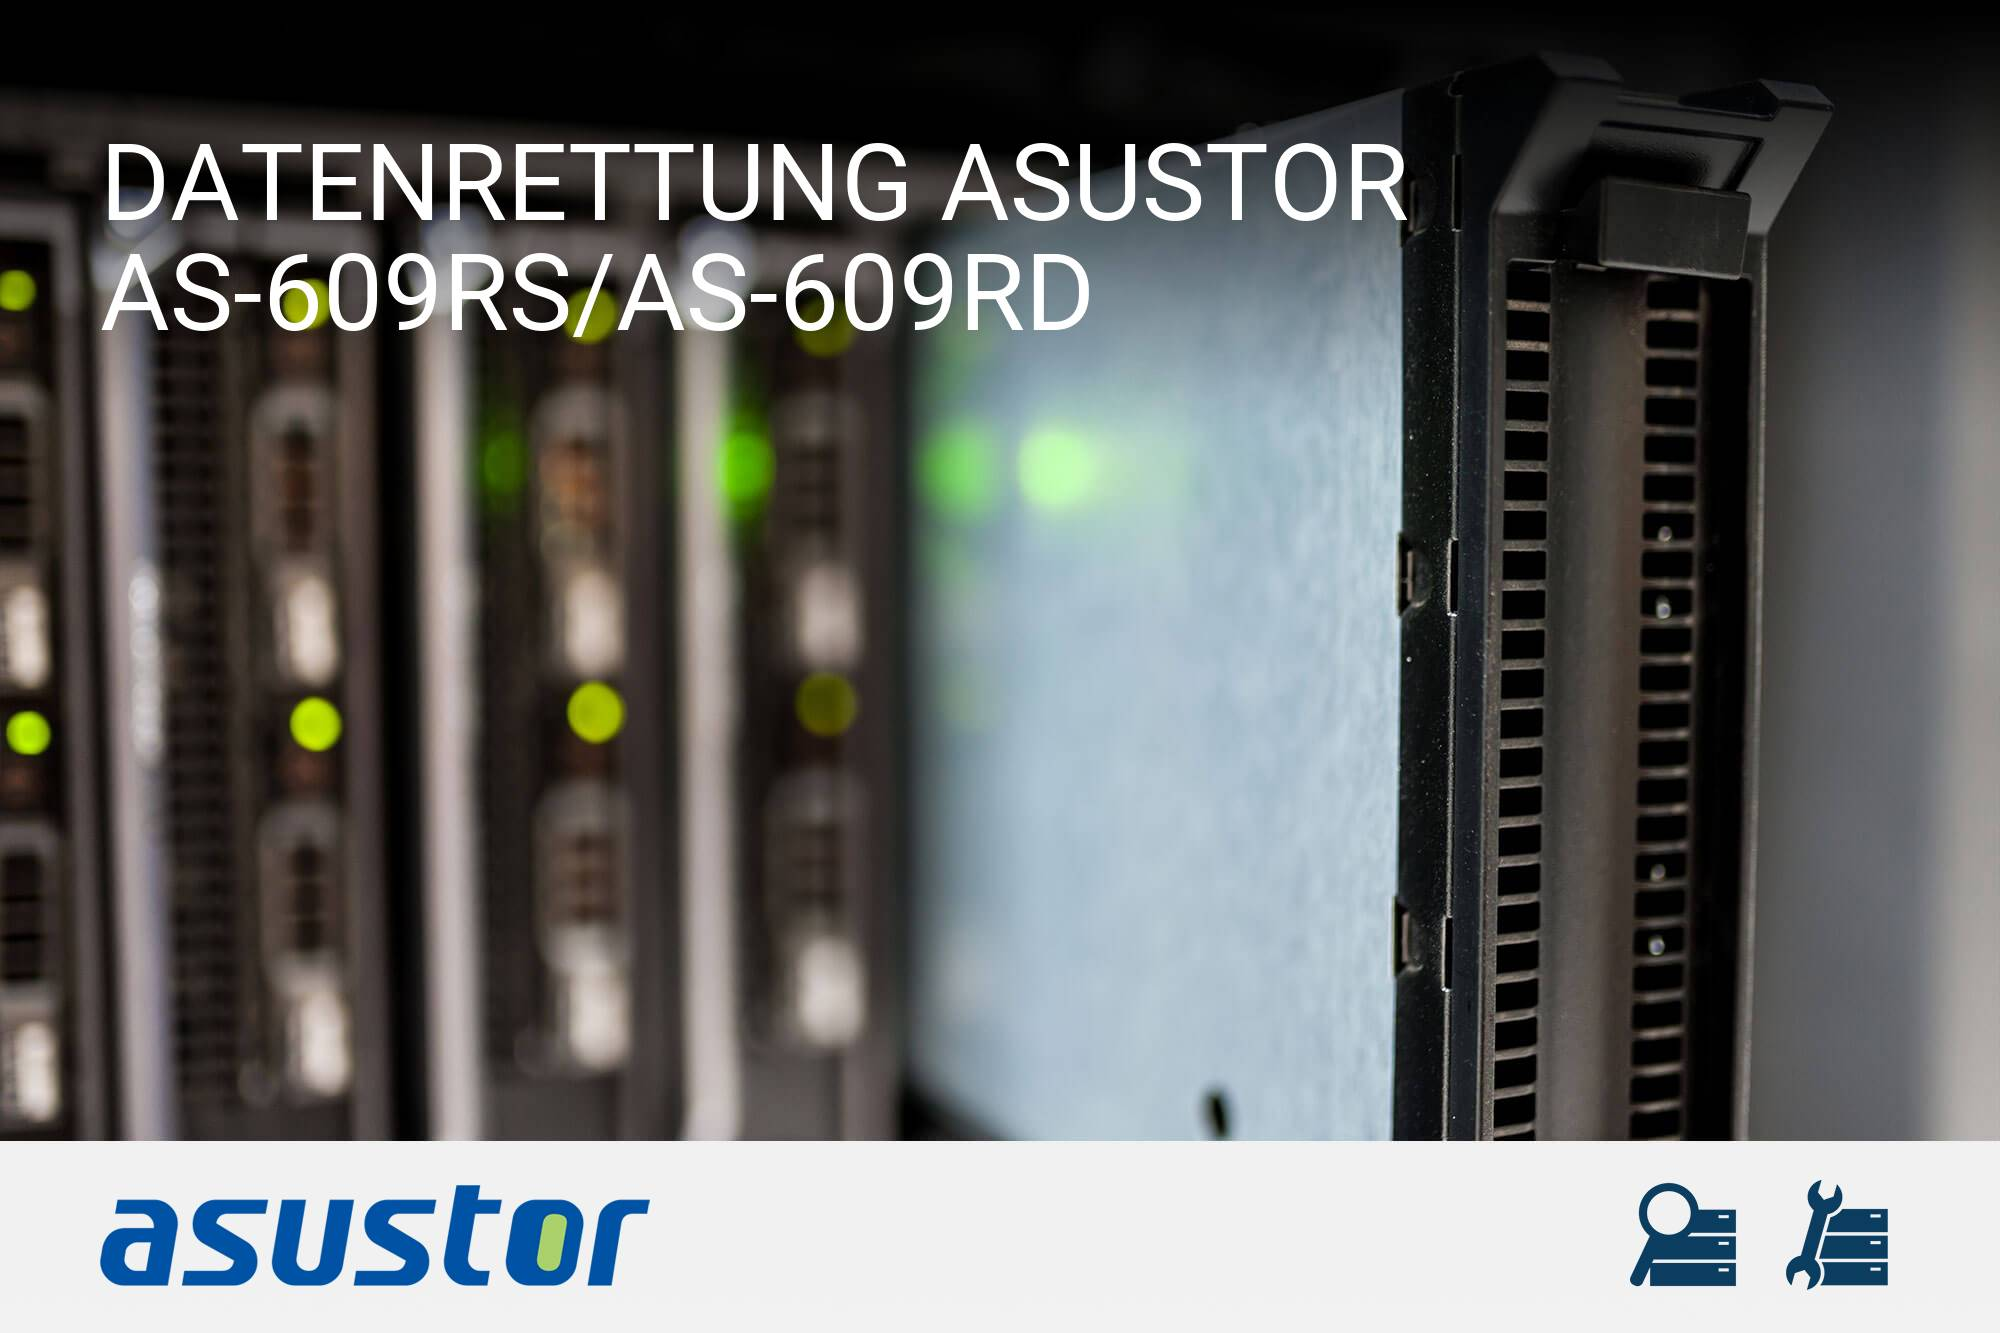 Asustor AS-609RS/AS-609RD